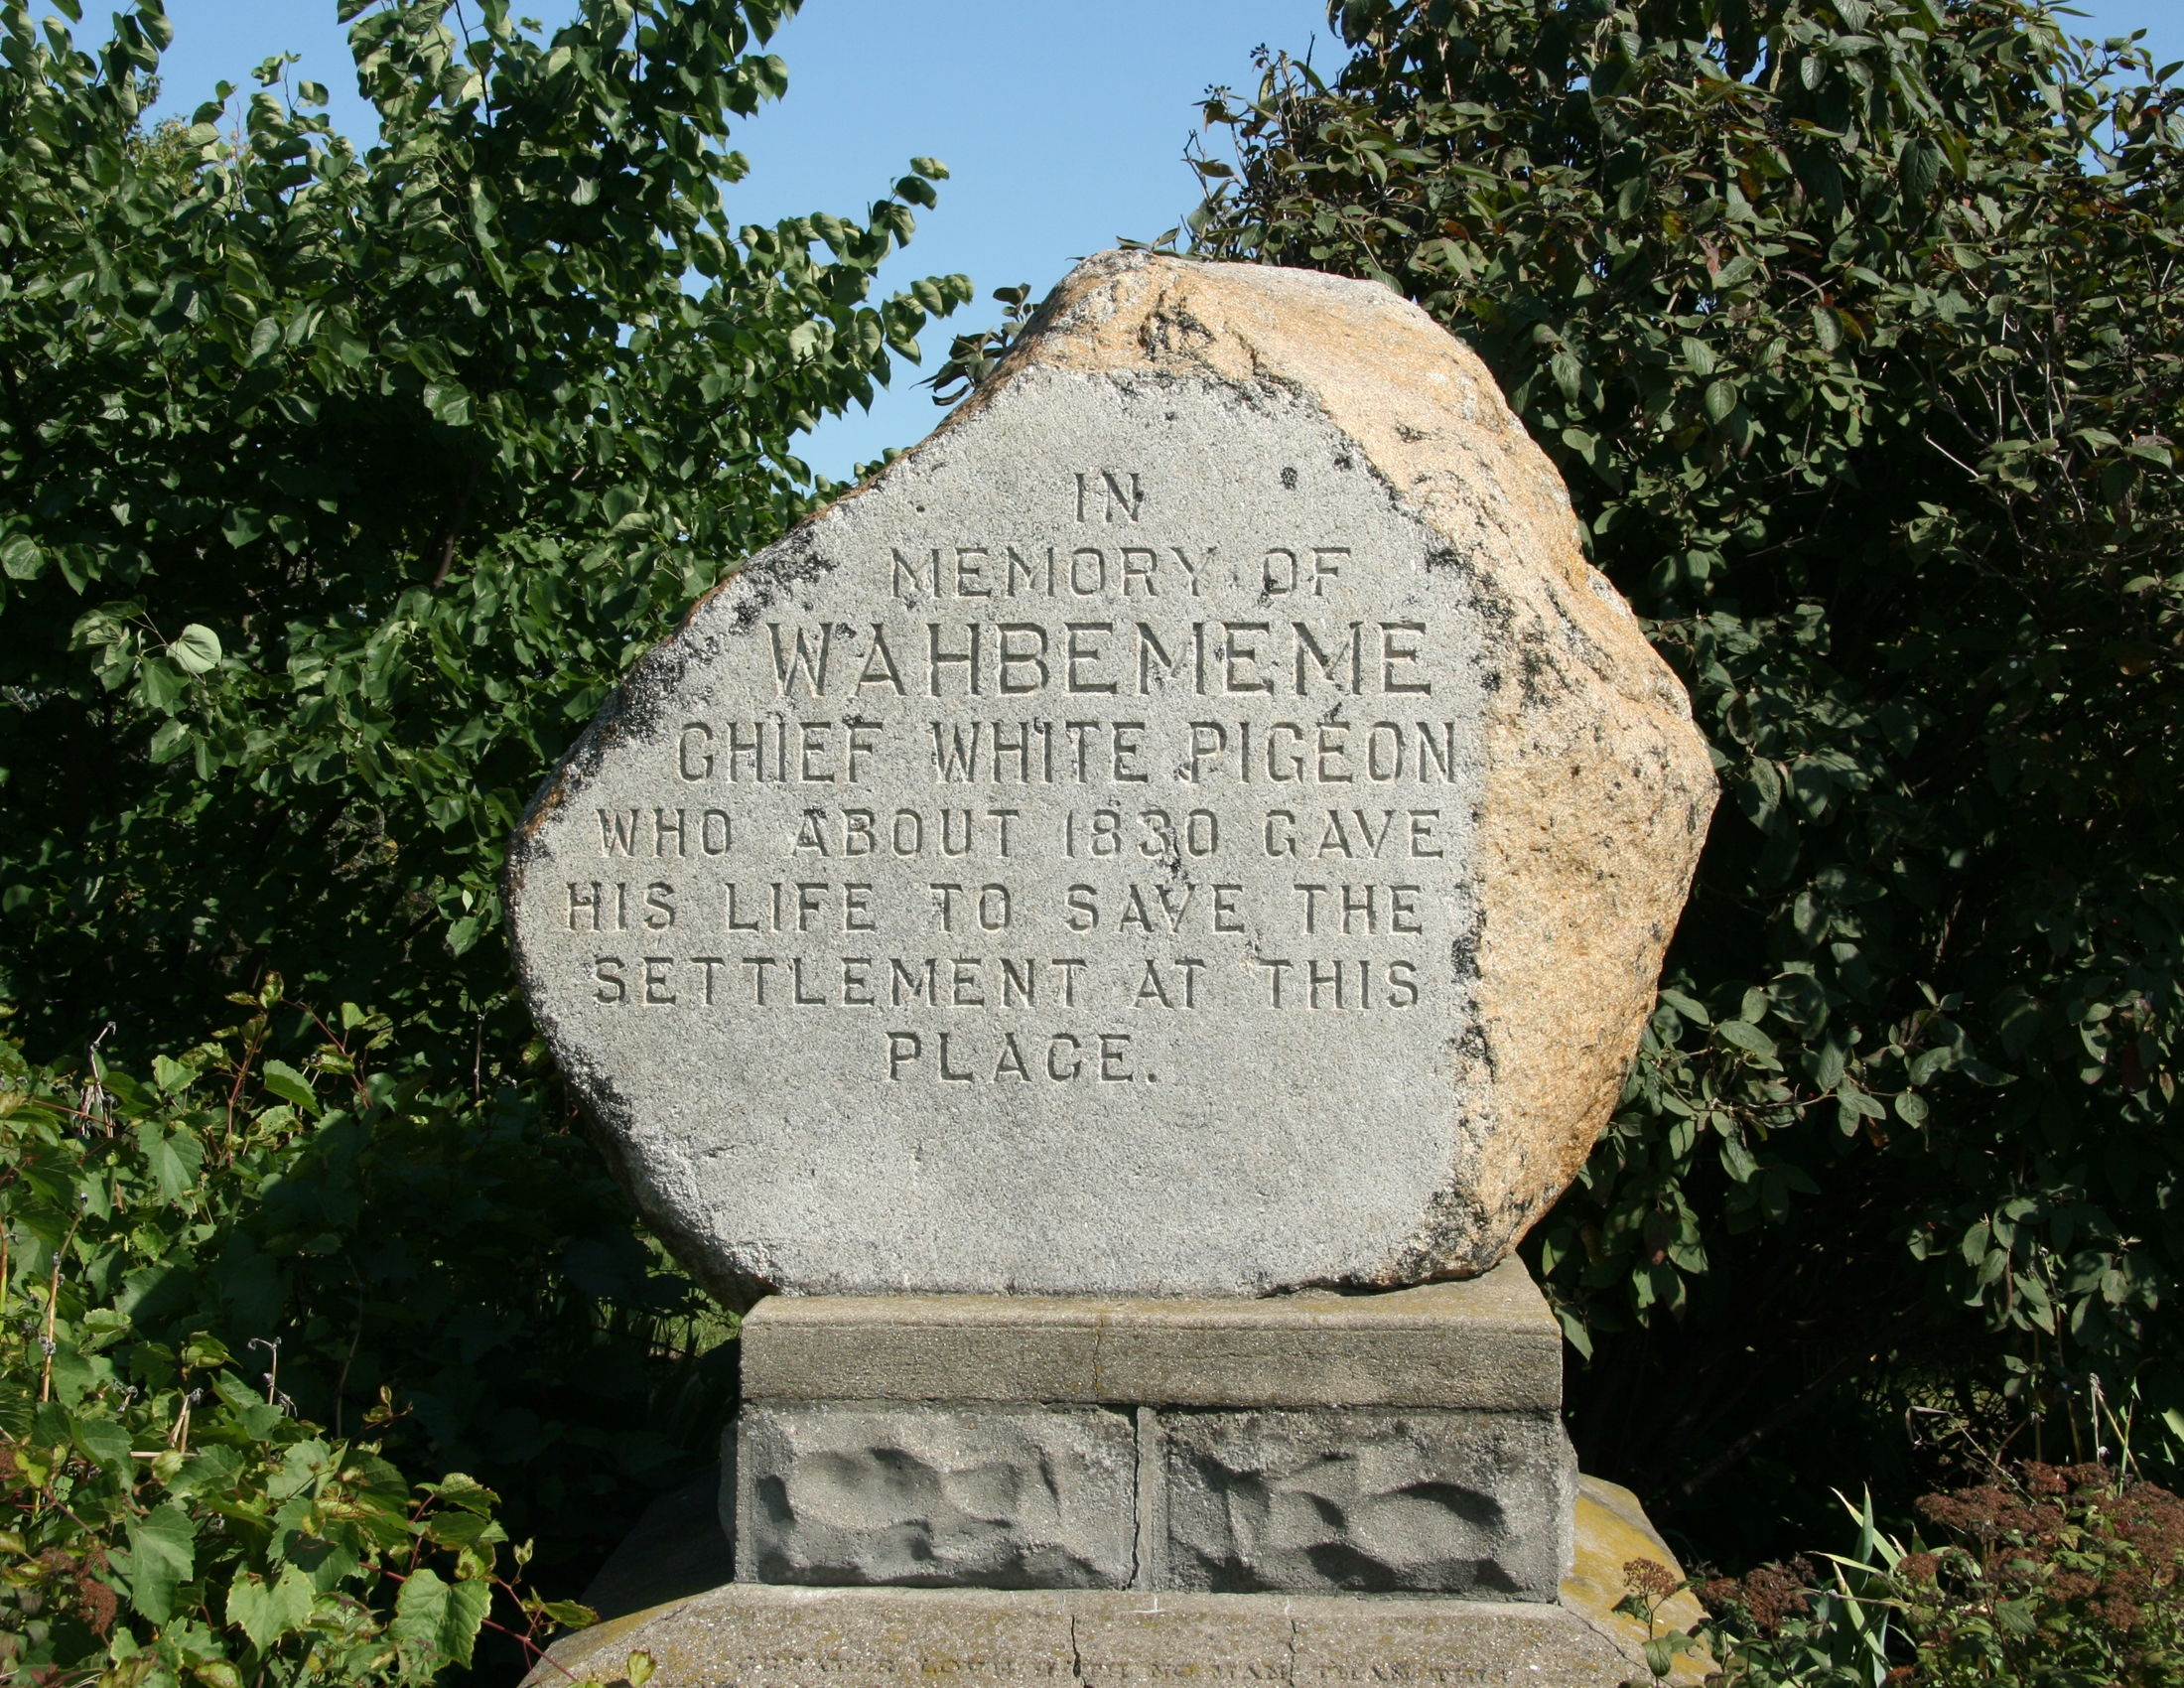 Chief Wahbememe Burial Site Marker